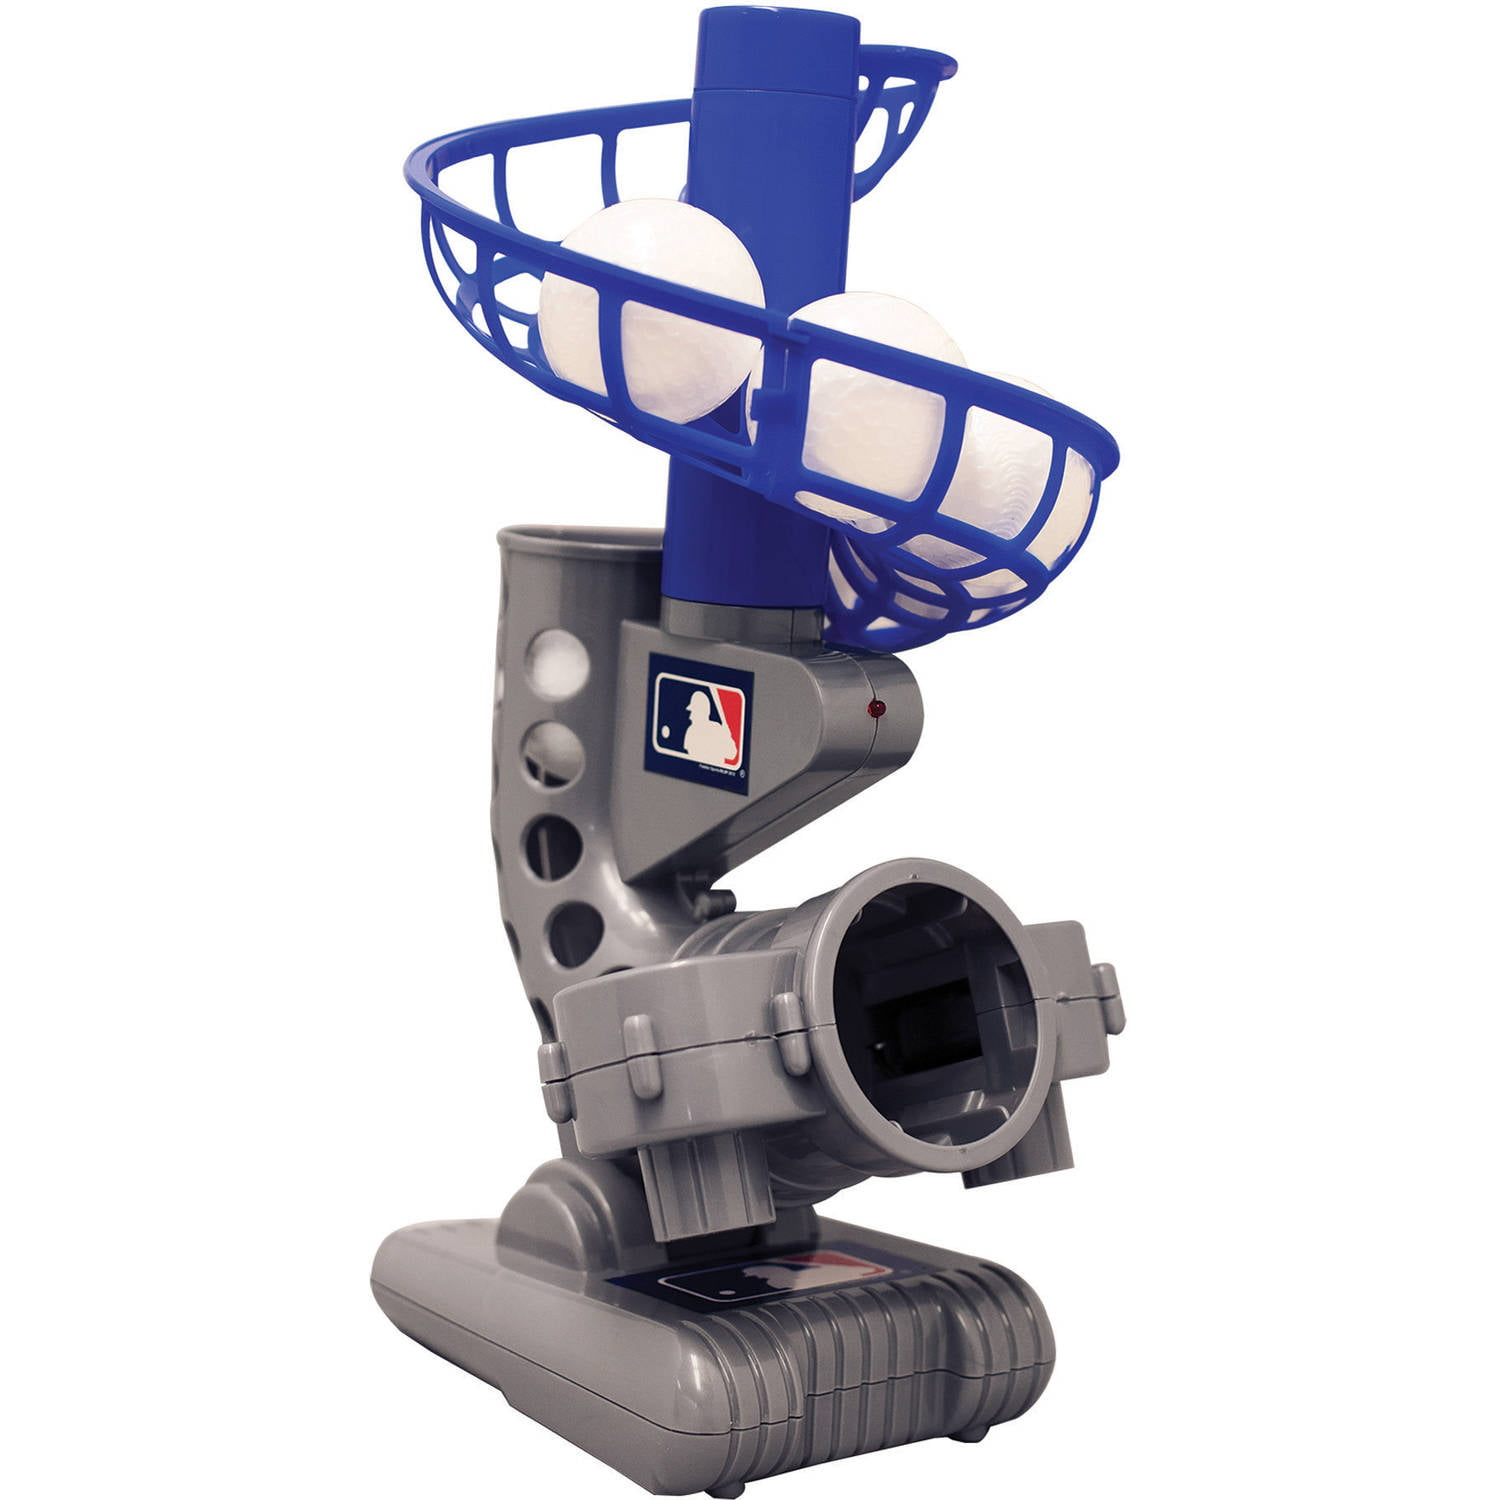 Franklin Sports MLB Youth Baseball Pitching Machine by Overstock